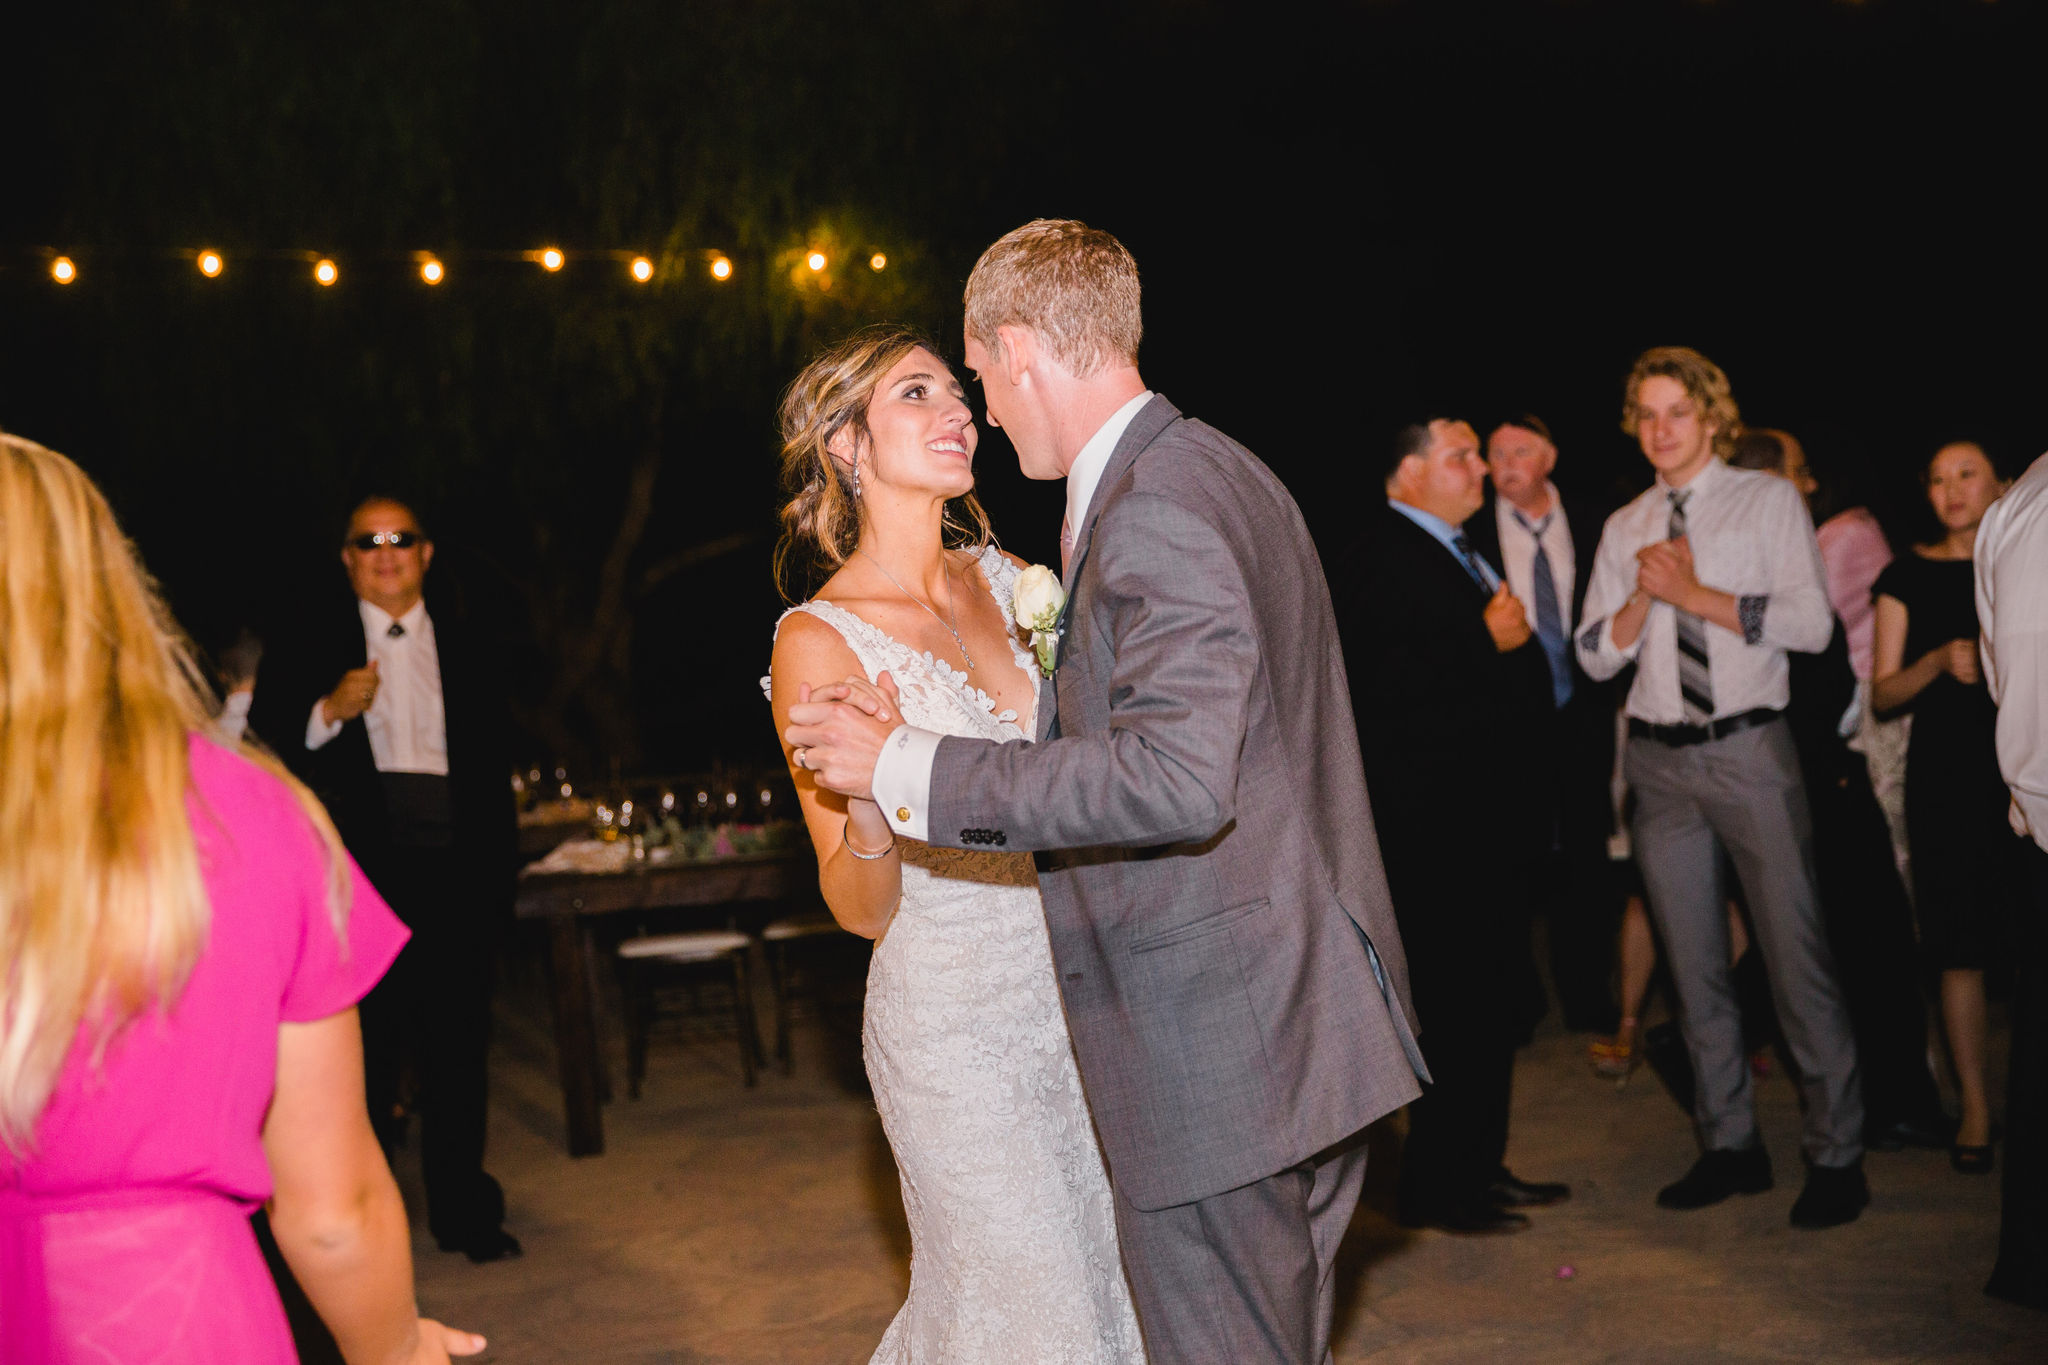 Wedding Dance | Catalina View Gardens